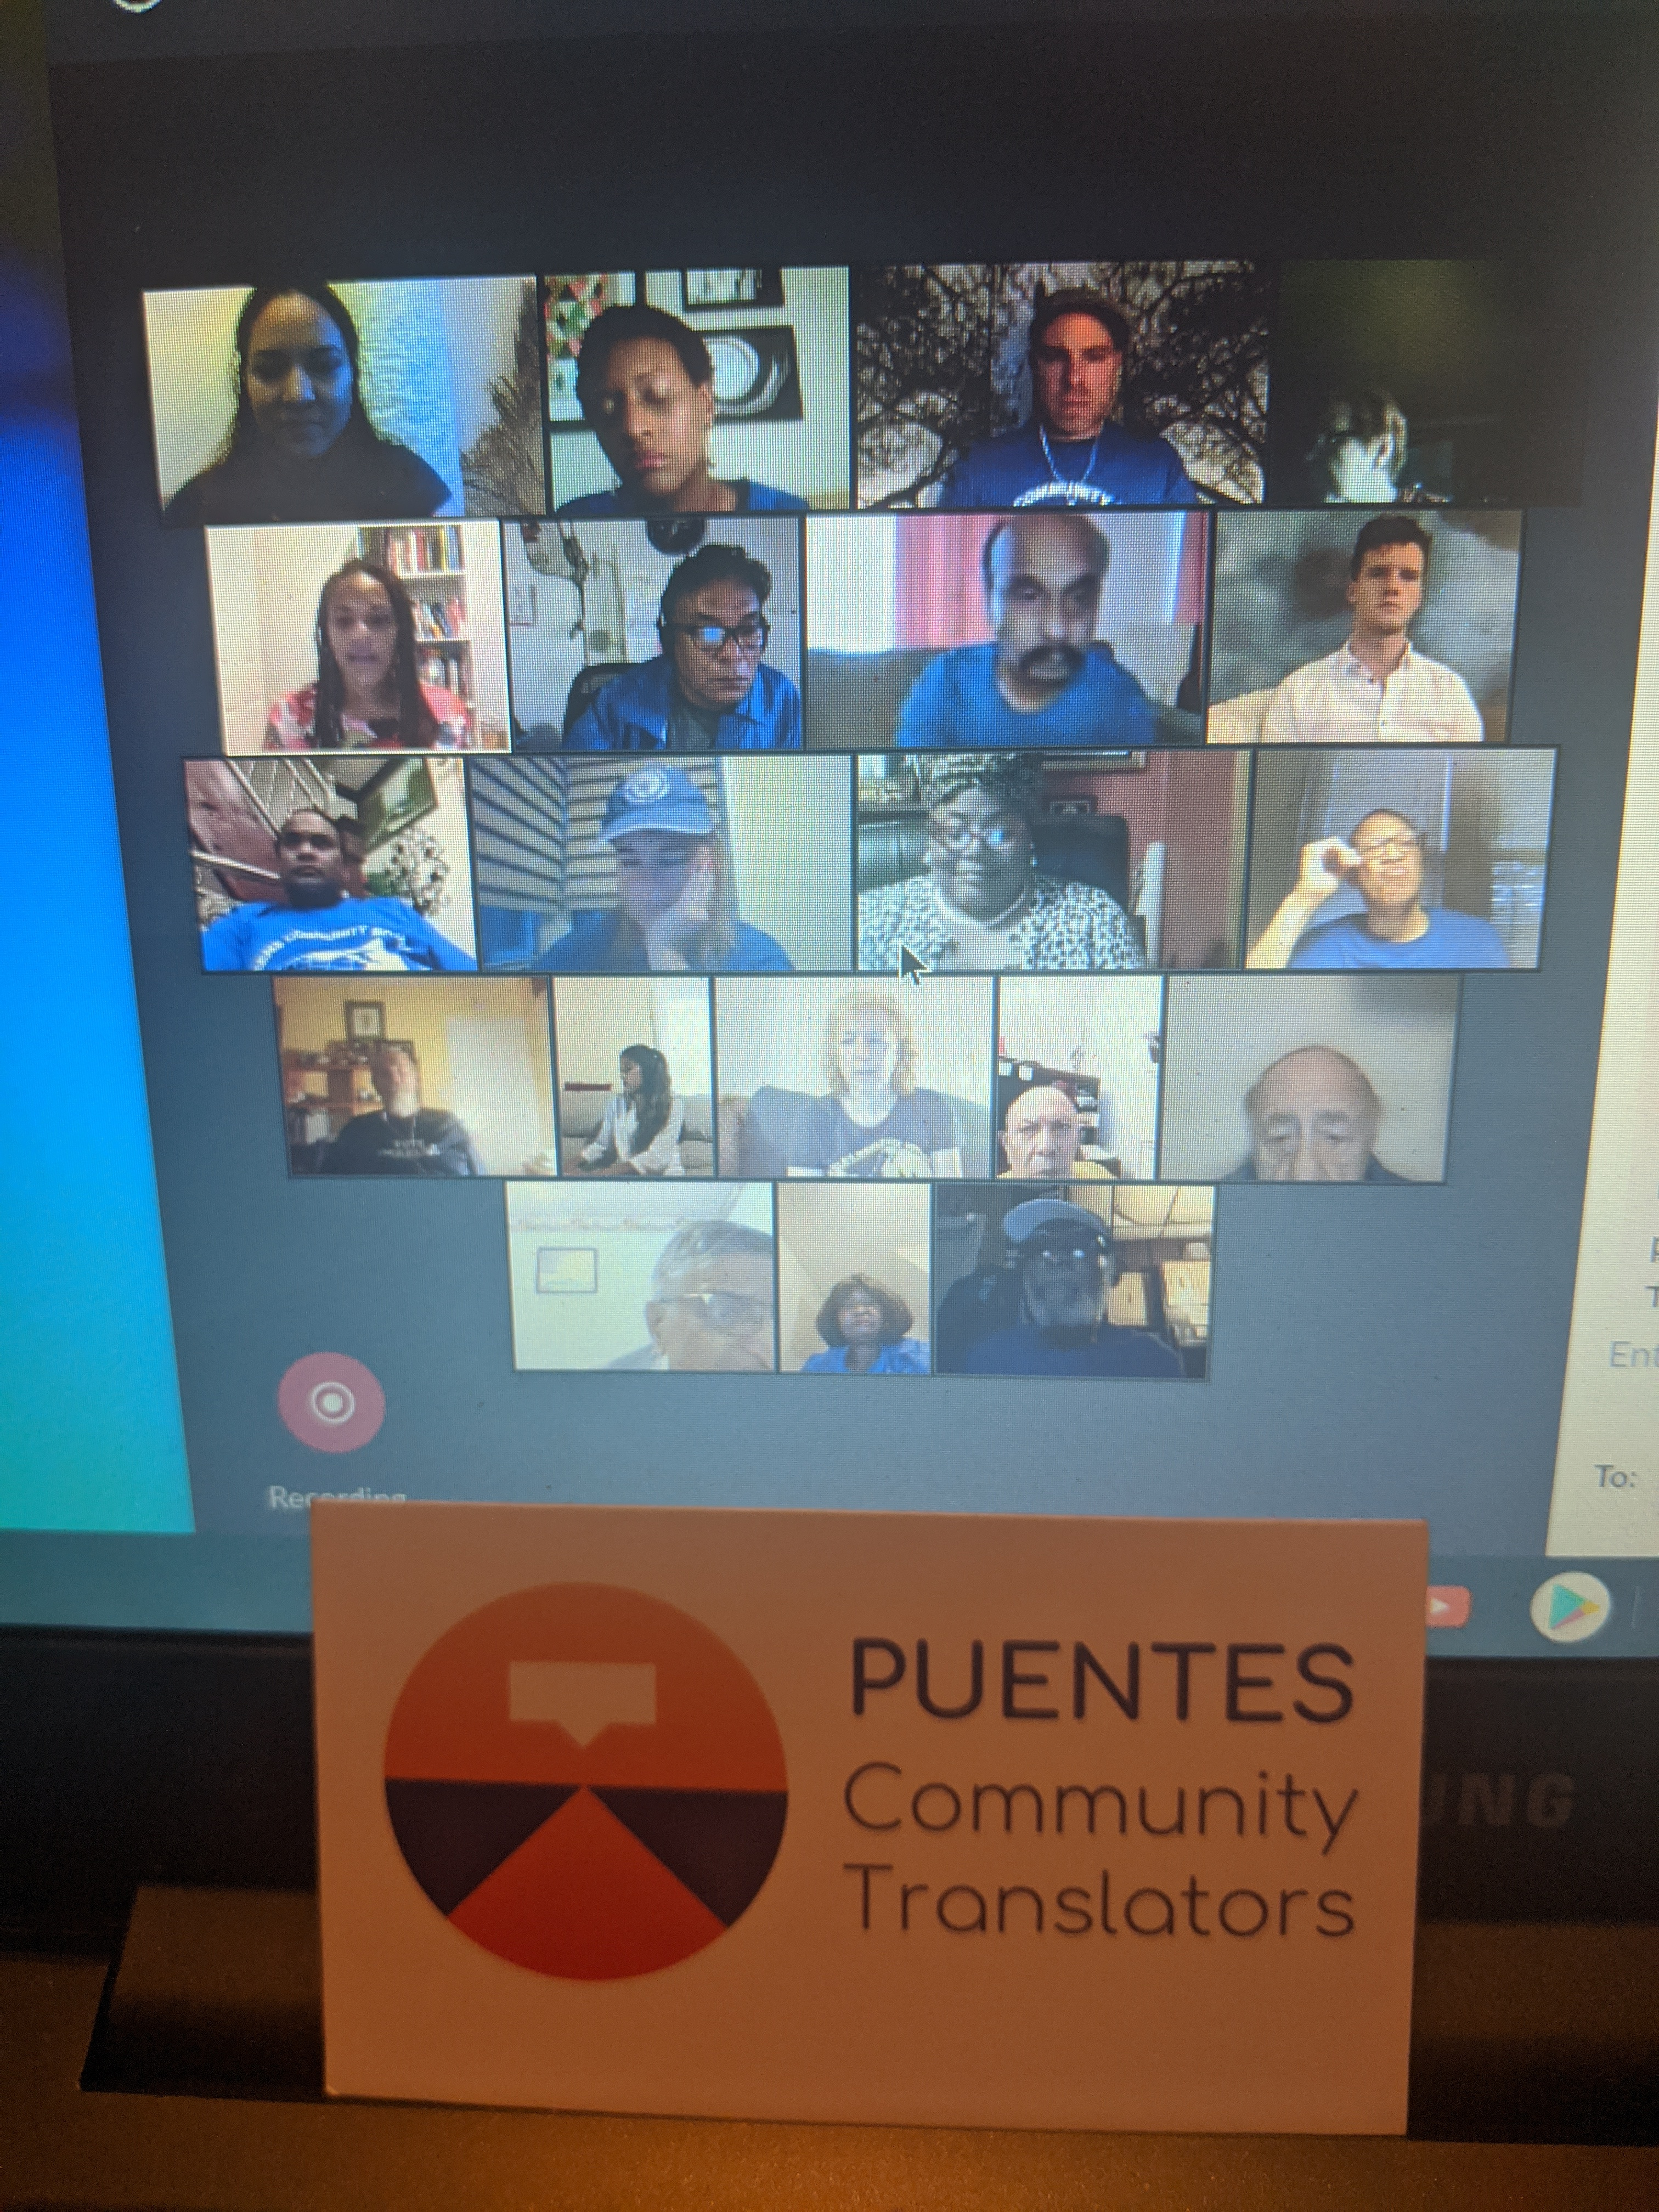 People on Zoom call with Puentes logo  in foreground